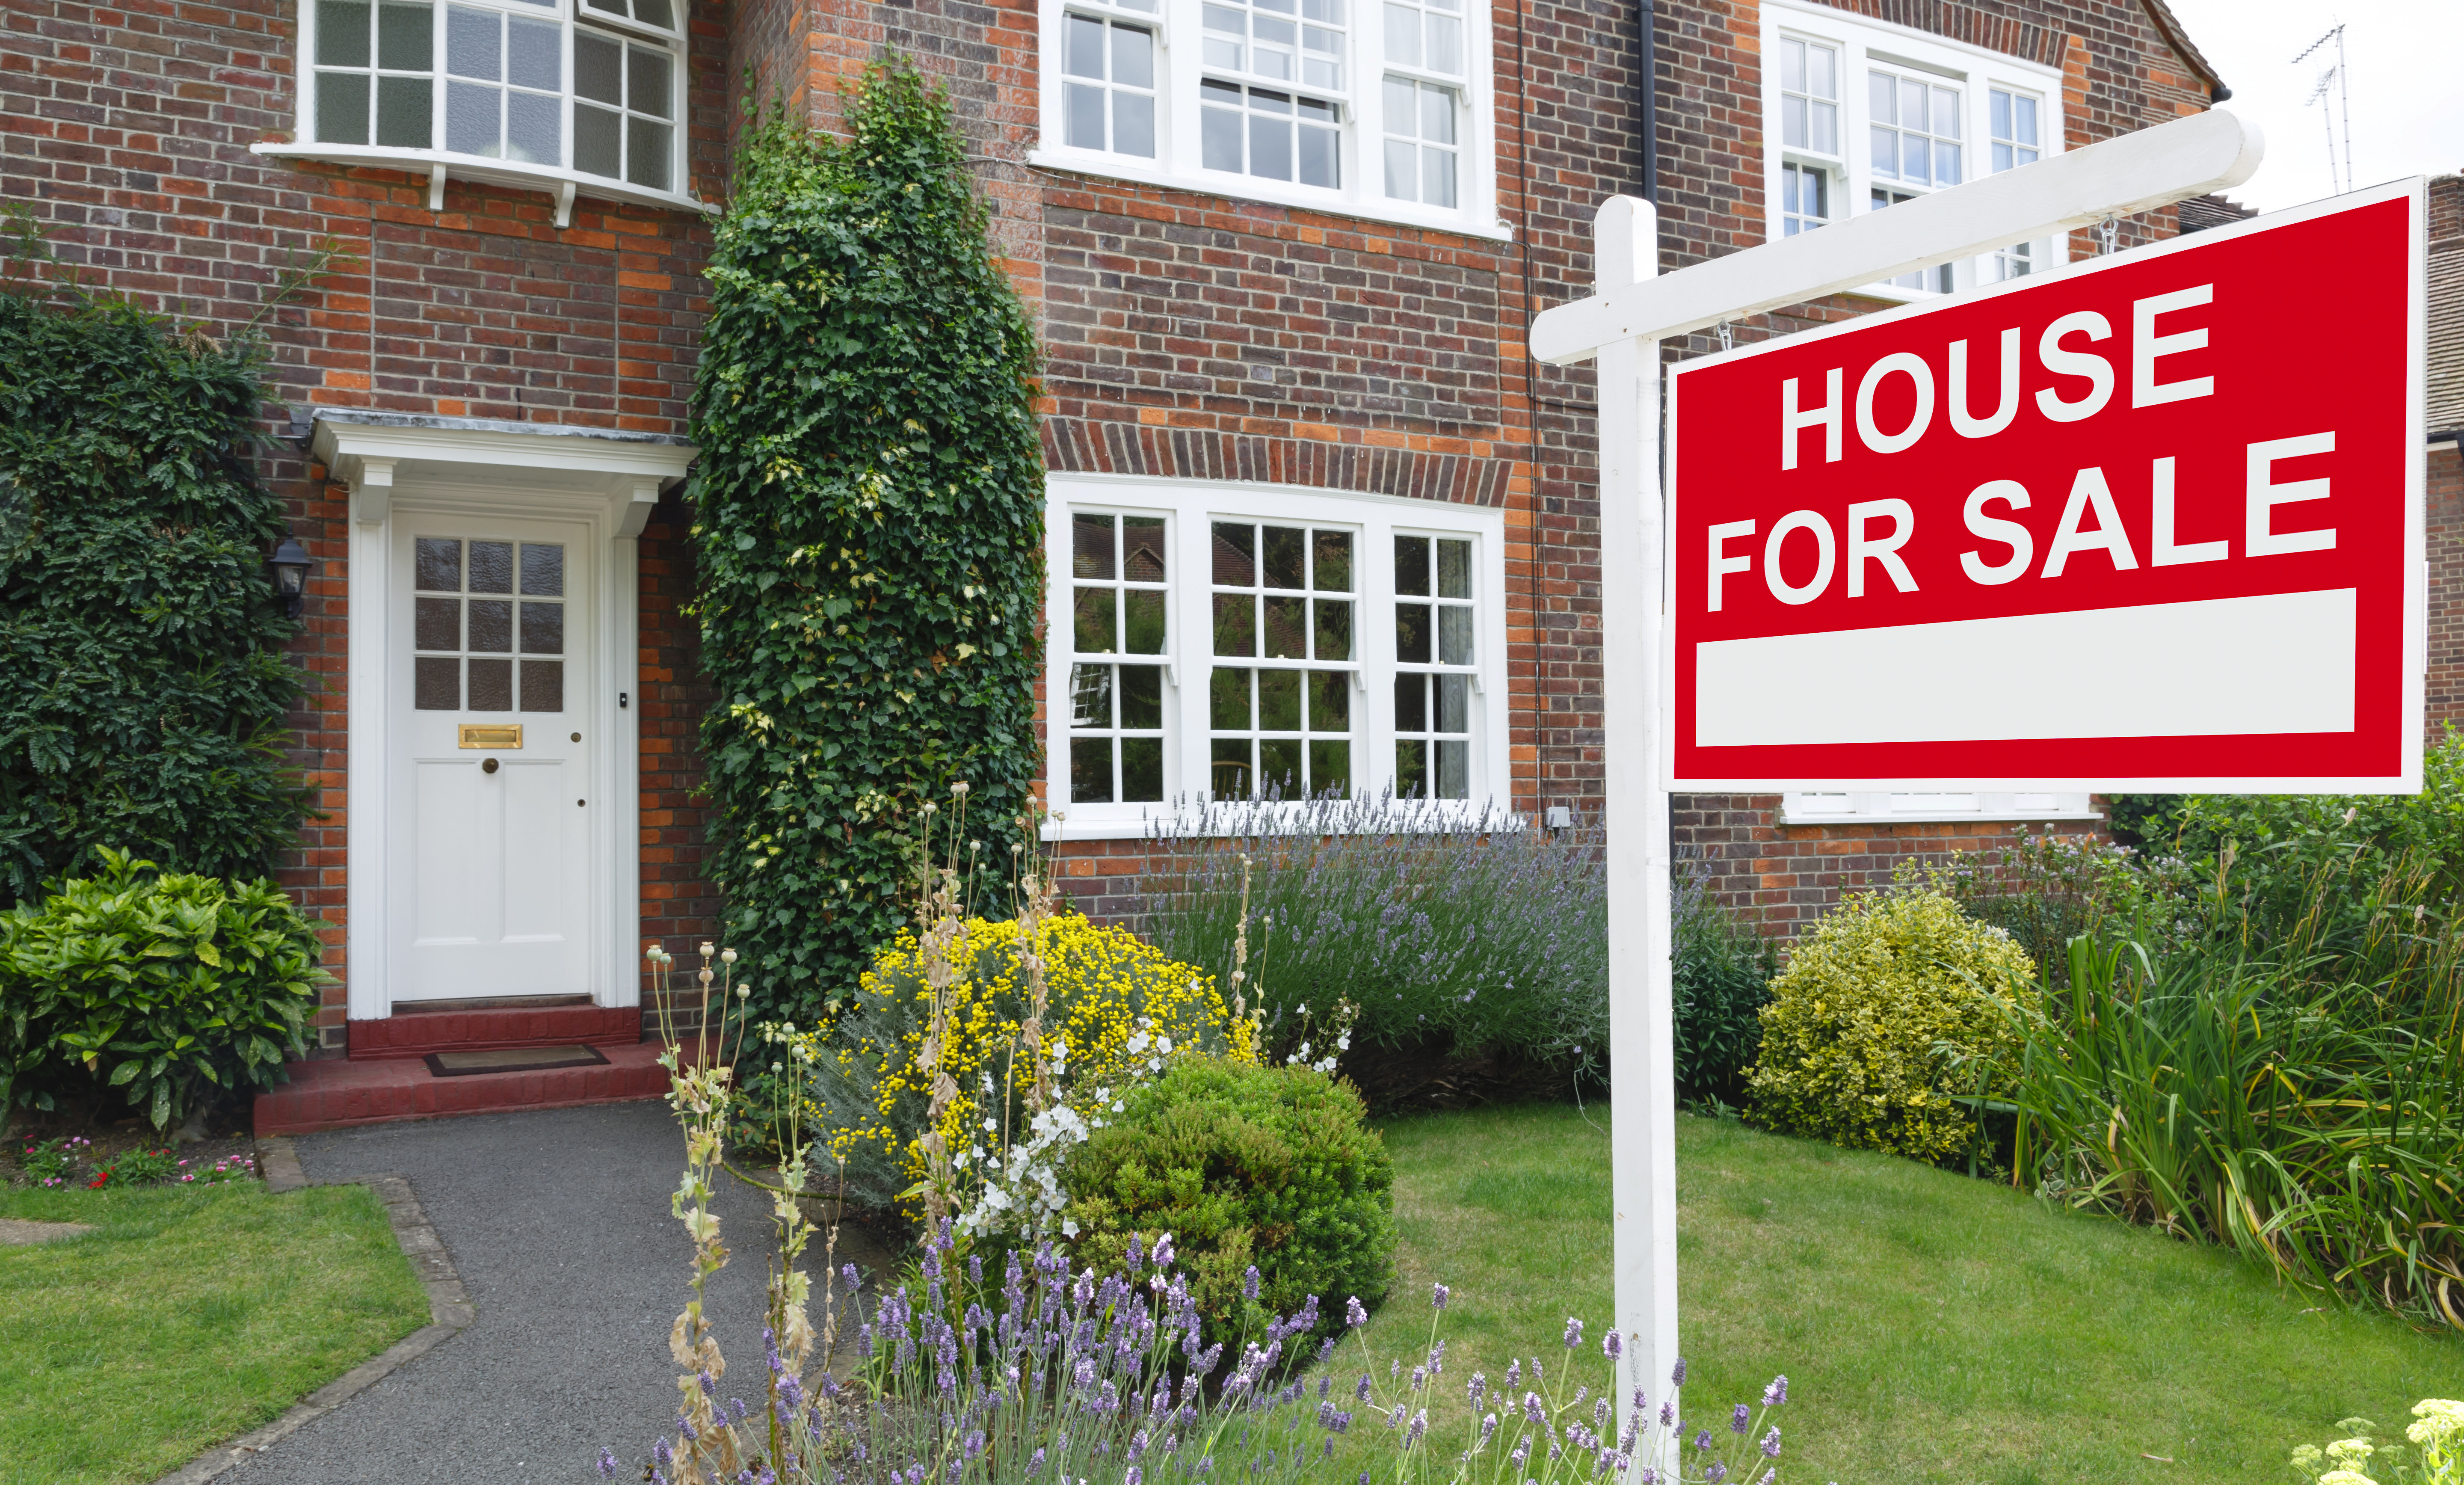 For sale sign outside a house in an affluent suburb of London